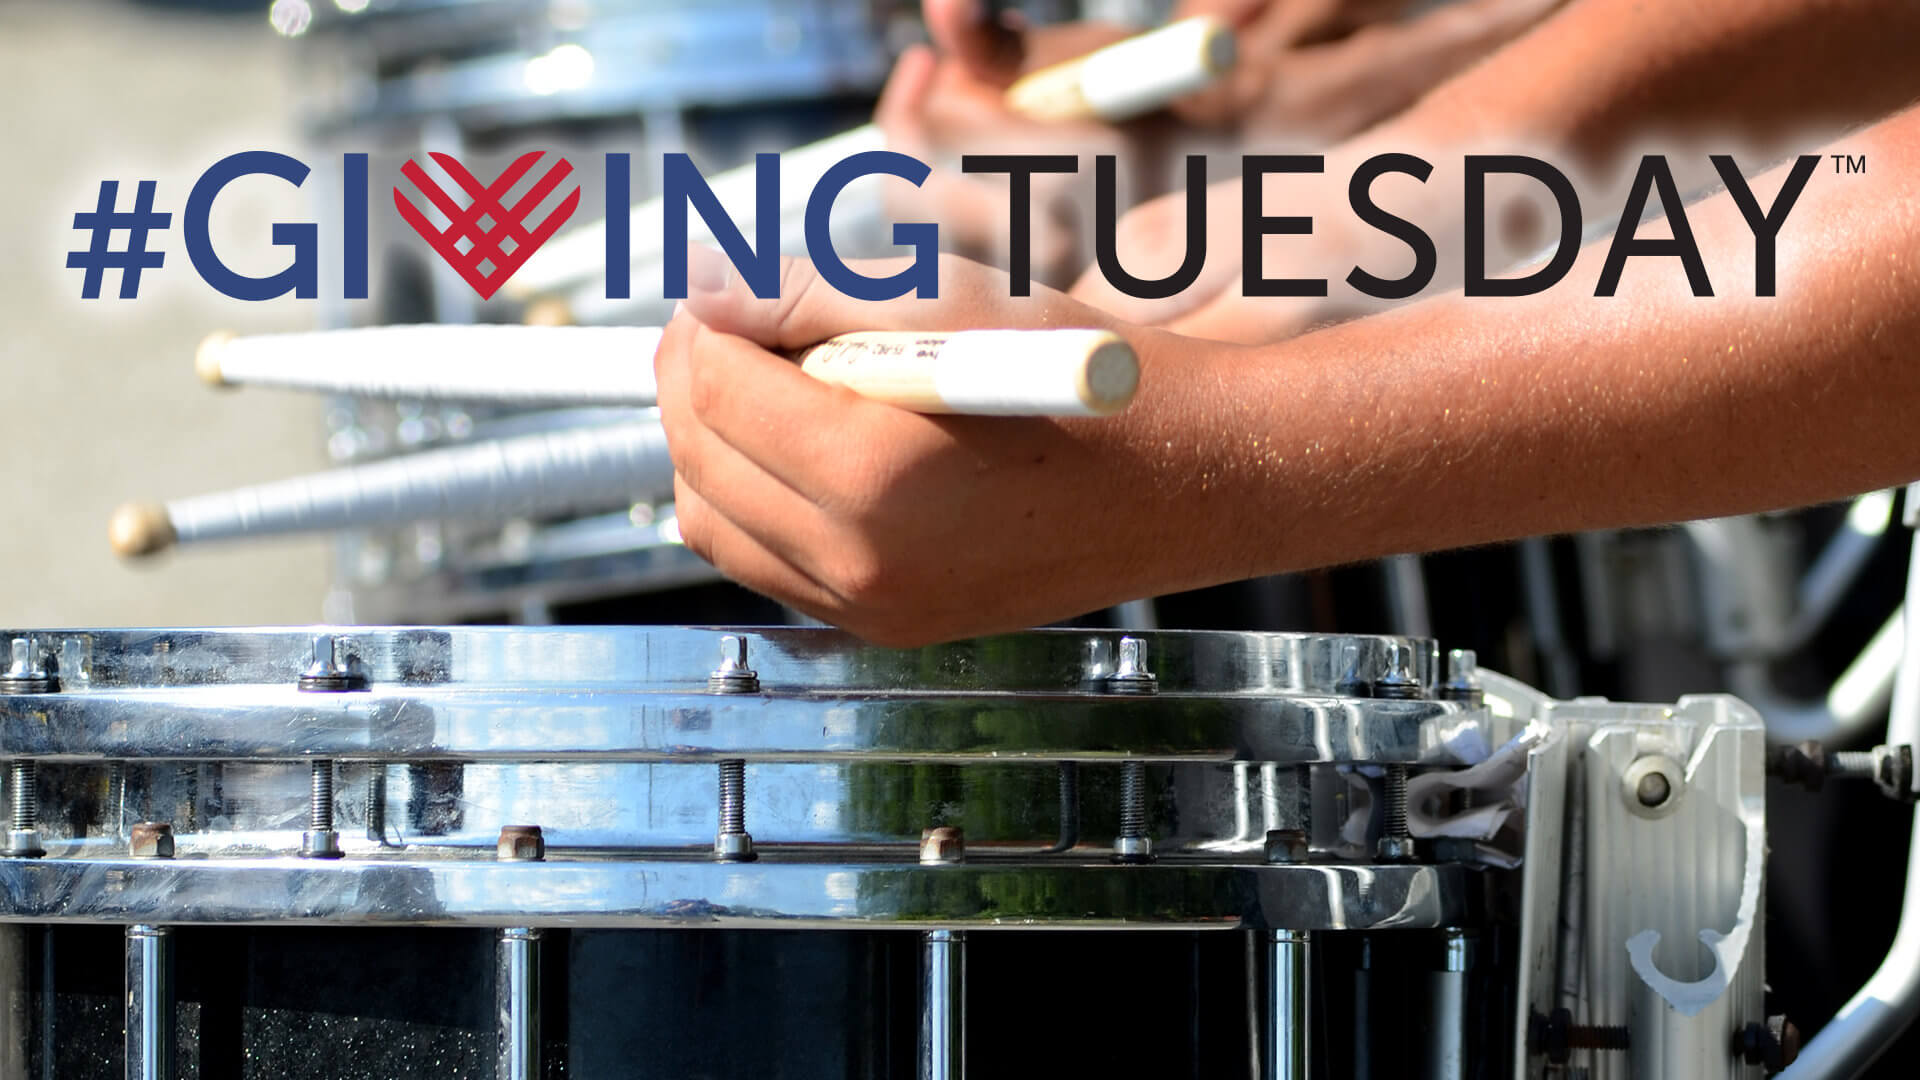 Drum corps get involved with #GivingTuesday